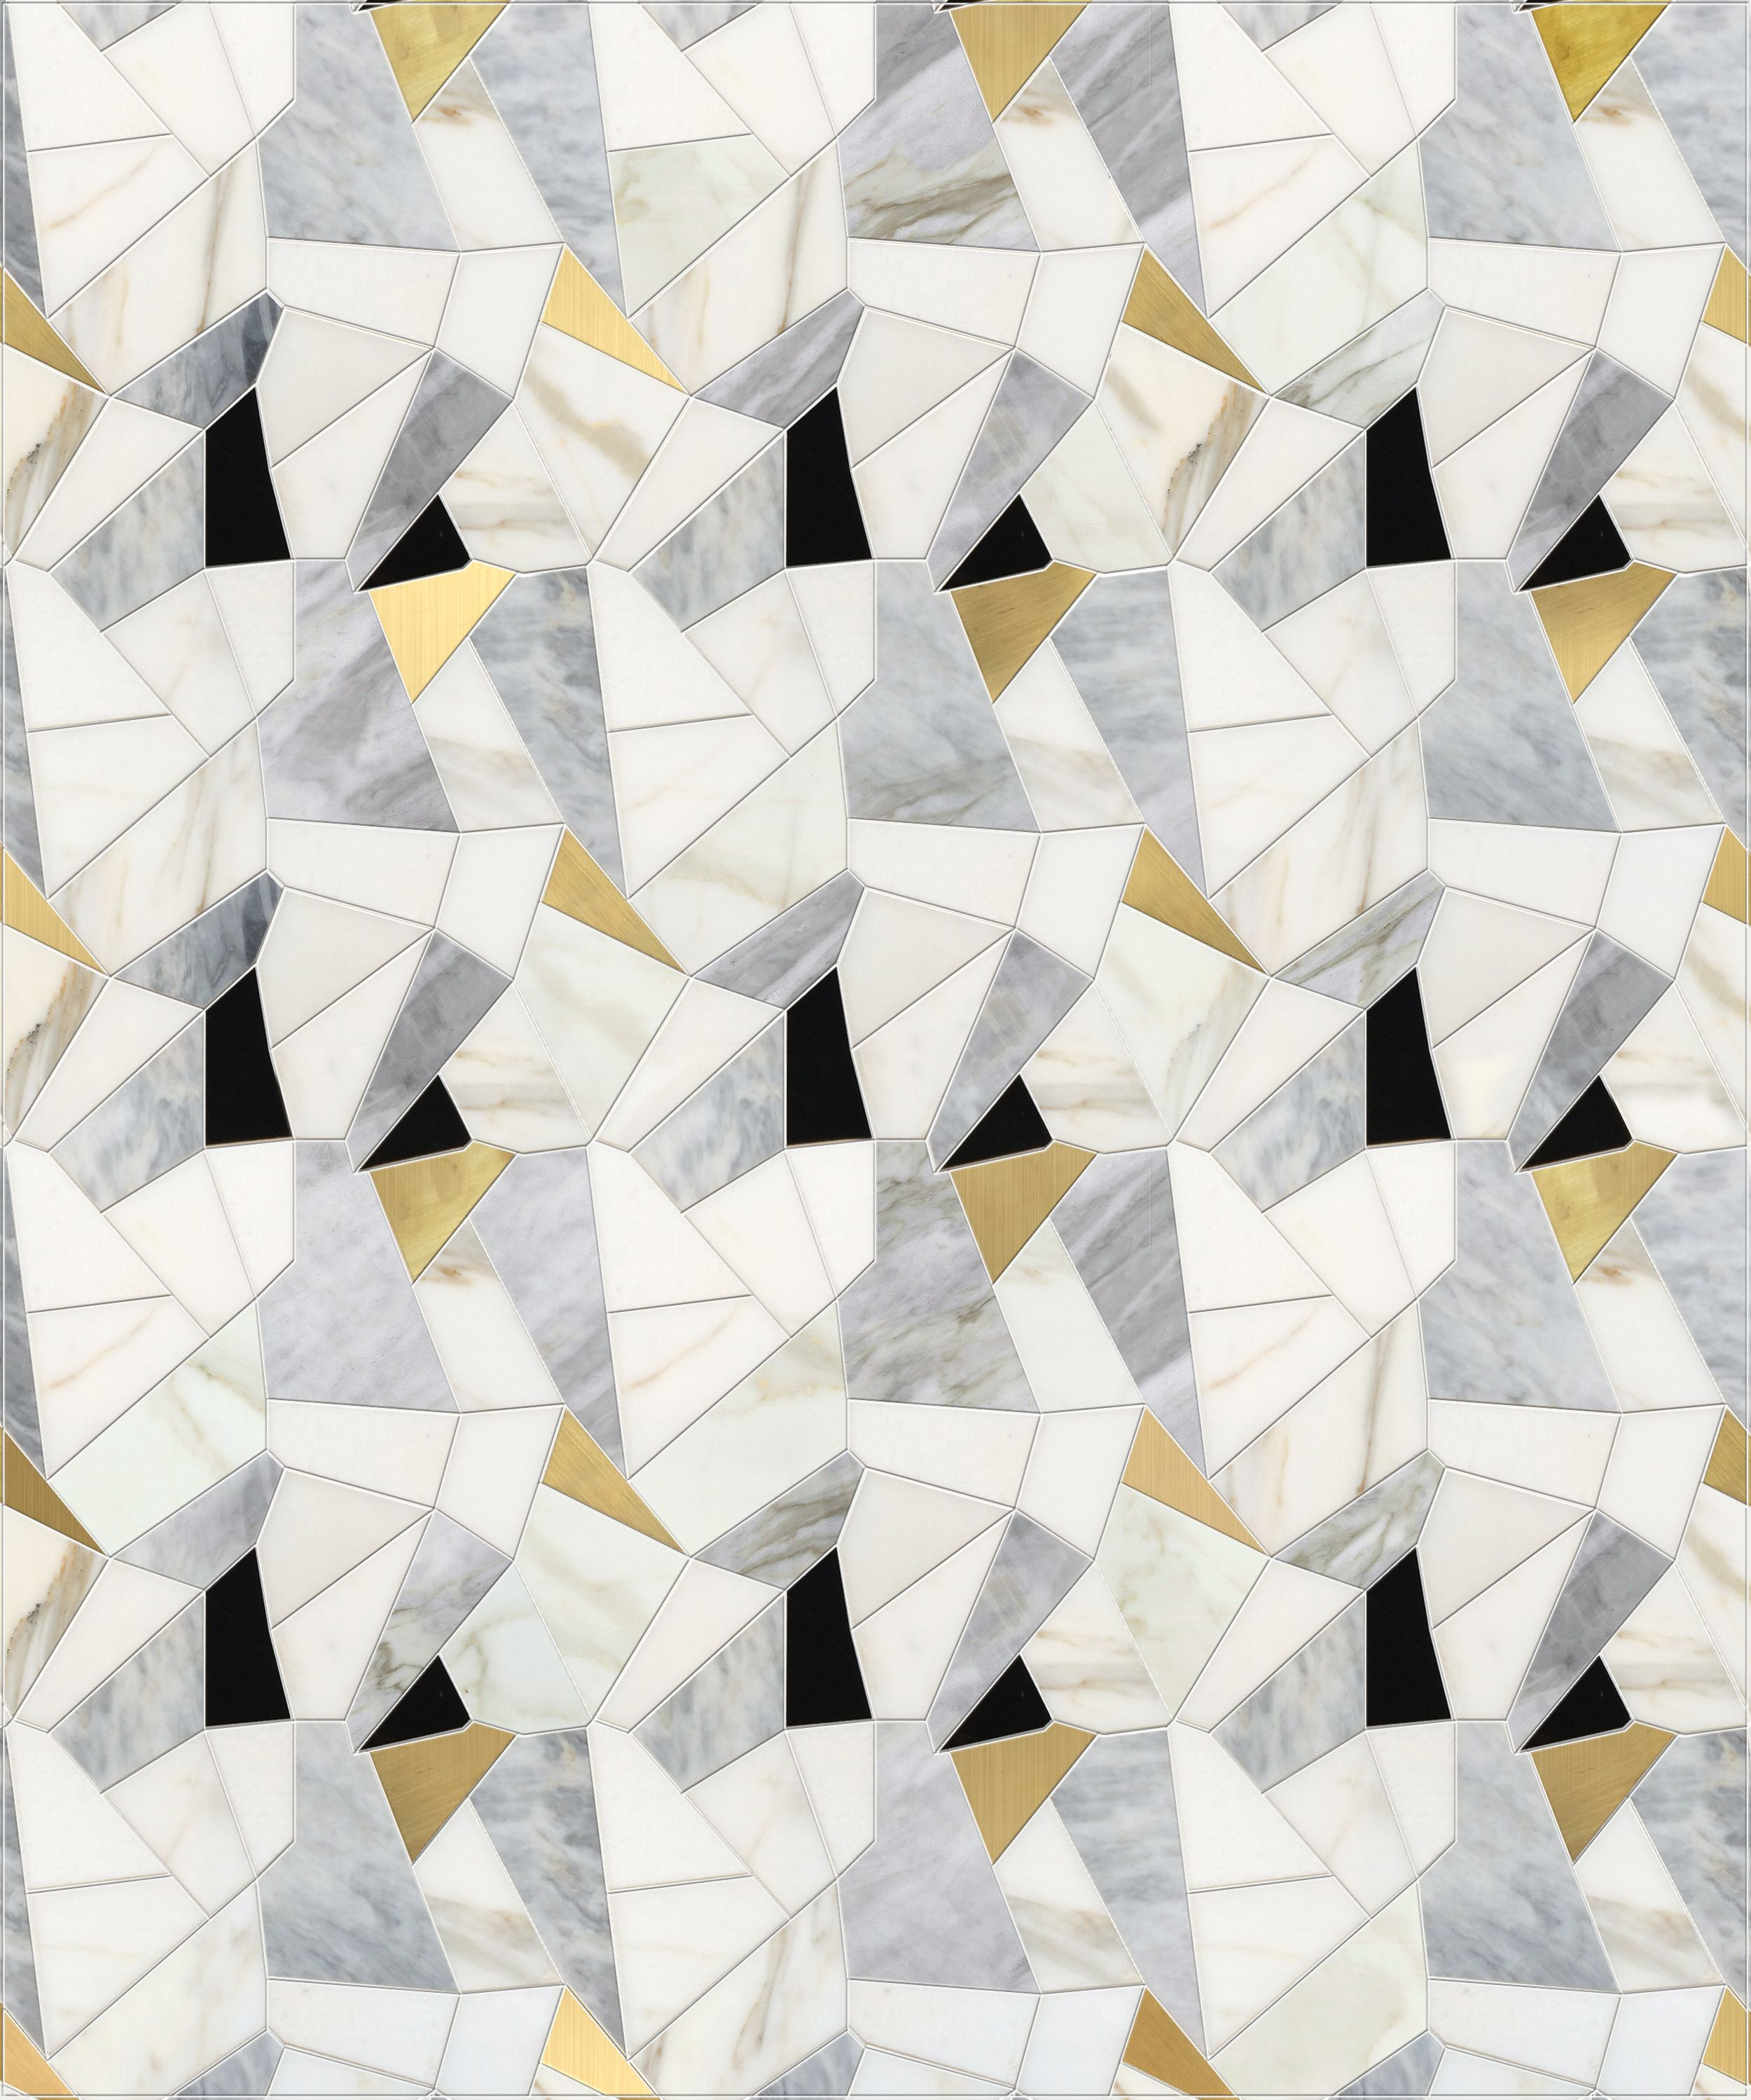 Dupont  Odysse Collection featured in natural stones Calacatta Oro Pacifica Blue  Nero